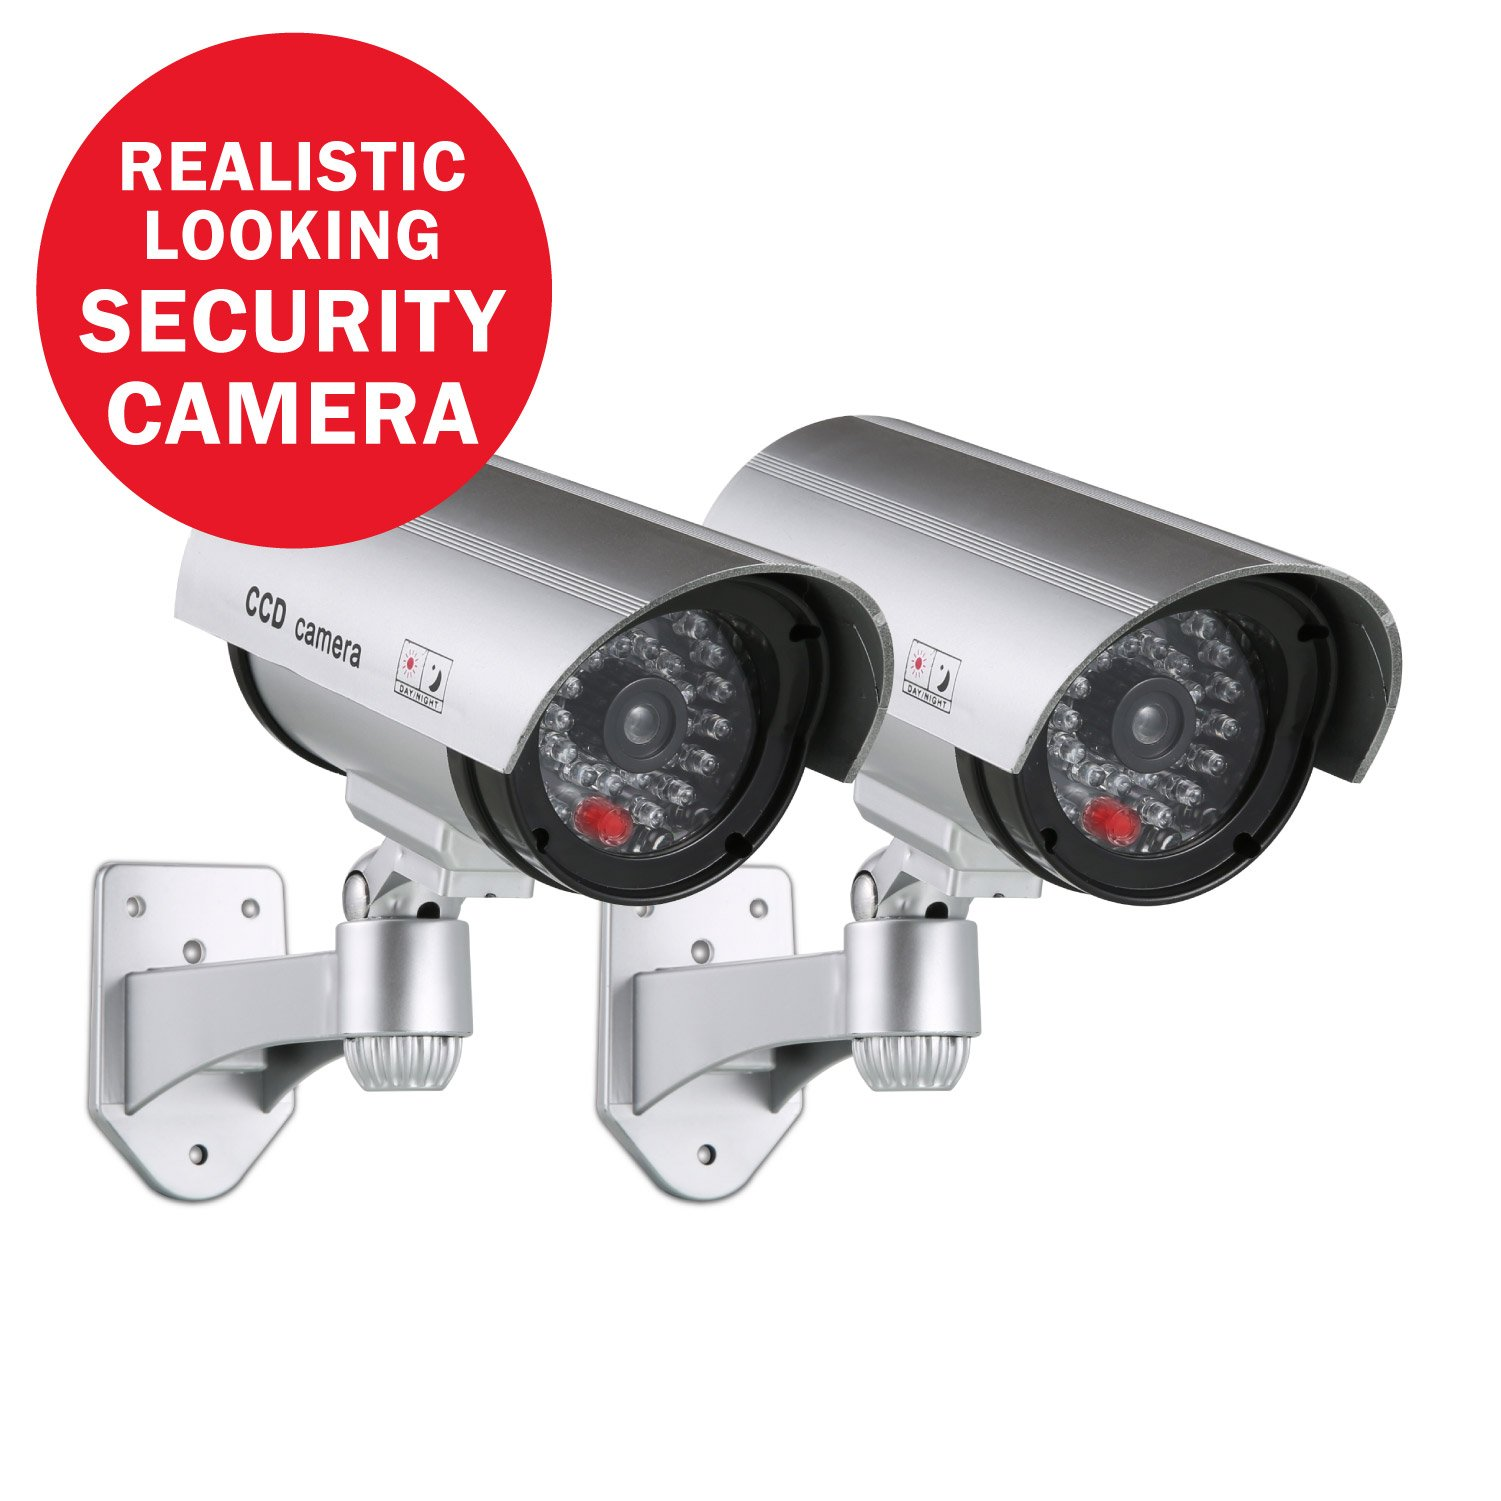 ANNKE 2 Pack Home Security Simulated Cameras with Flashing Red LED for Indoor and Outdoor use by ANNKE (Image #1)